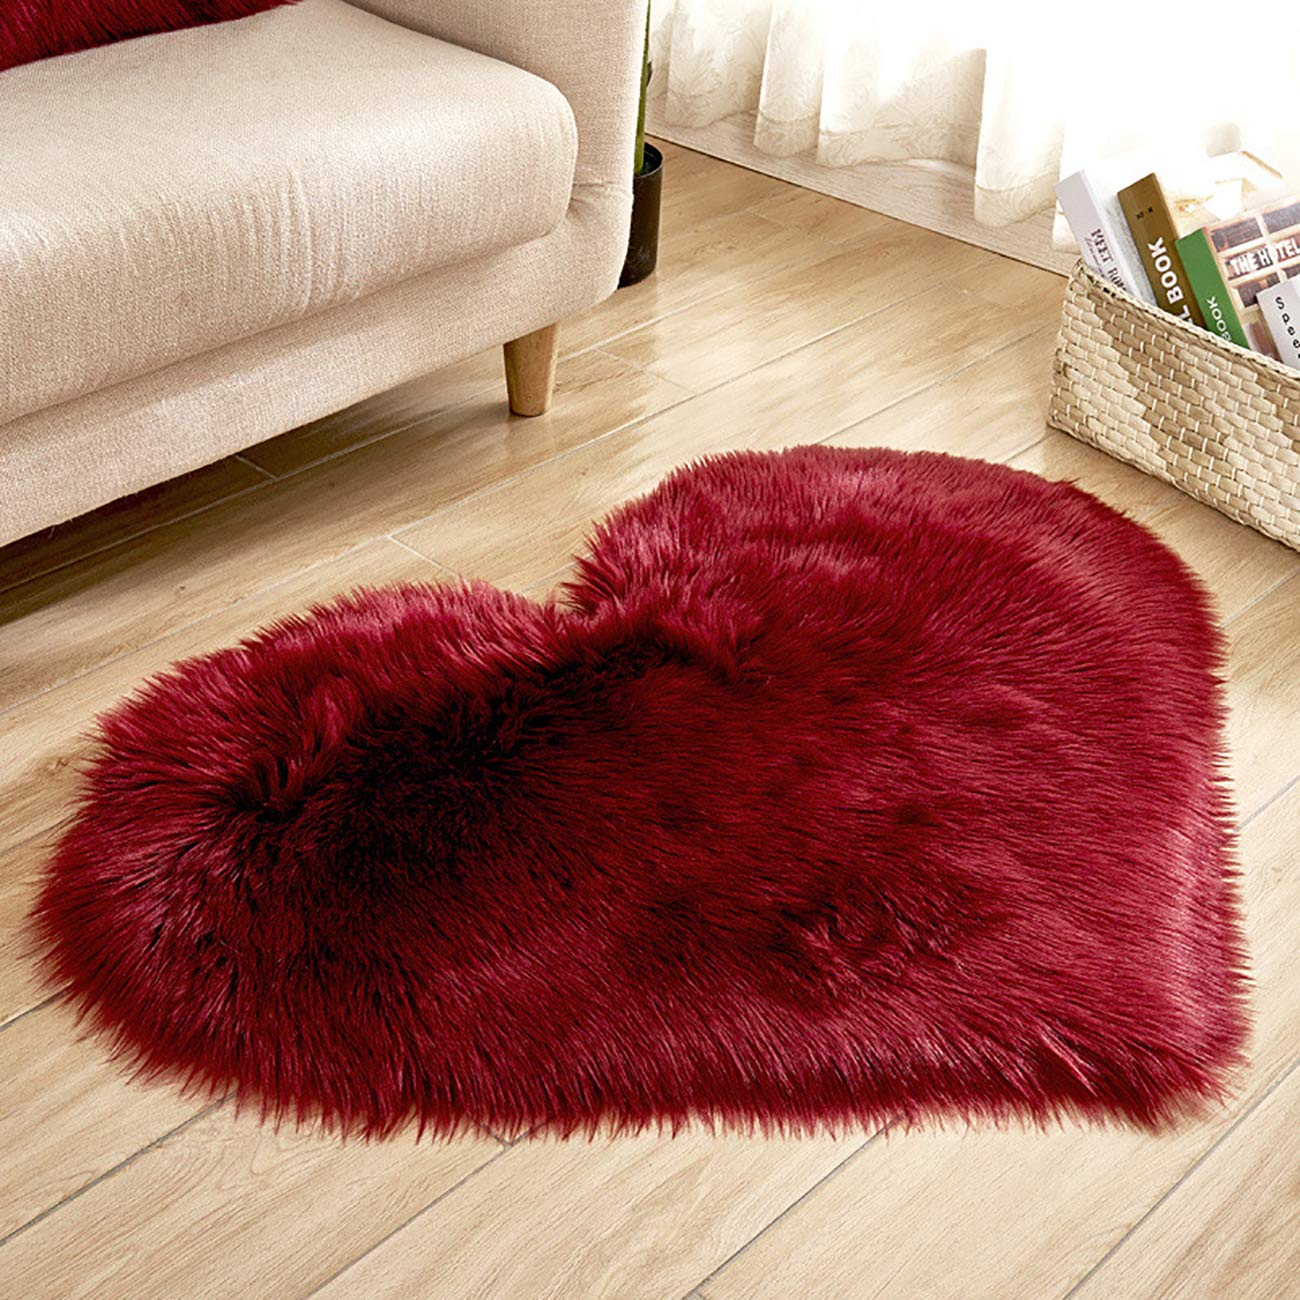 Picturesque Solid Color Indoor Heart-Shaped Anti-skidding Plush Rug Foot Pad for Bedroom Living Room 27 x 35